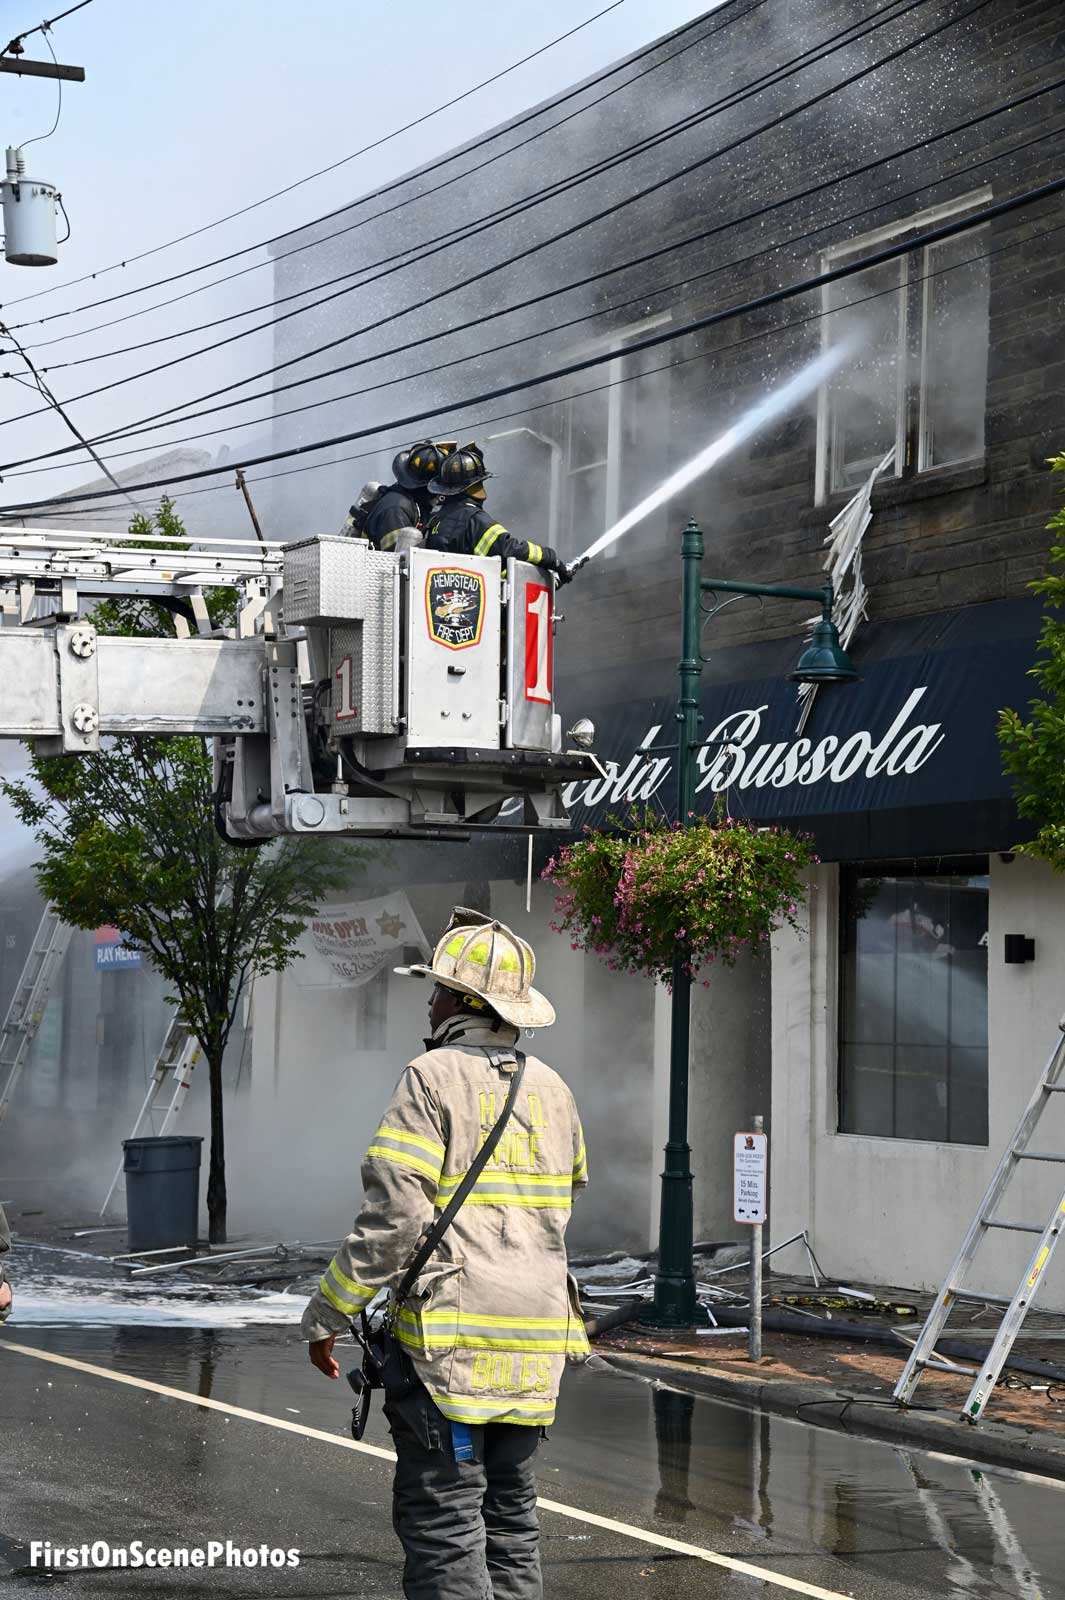 Firefighter in tower ladder aims stream into the building